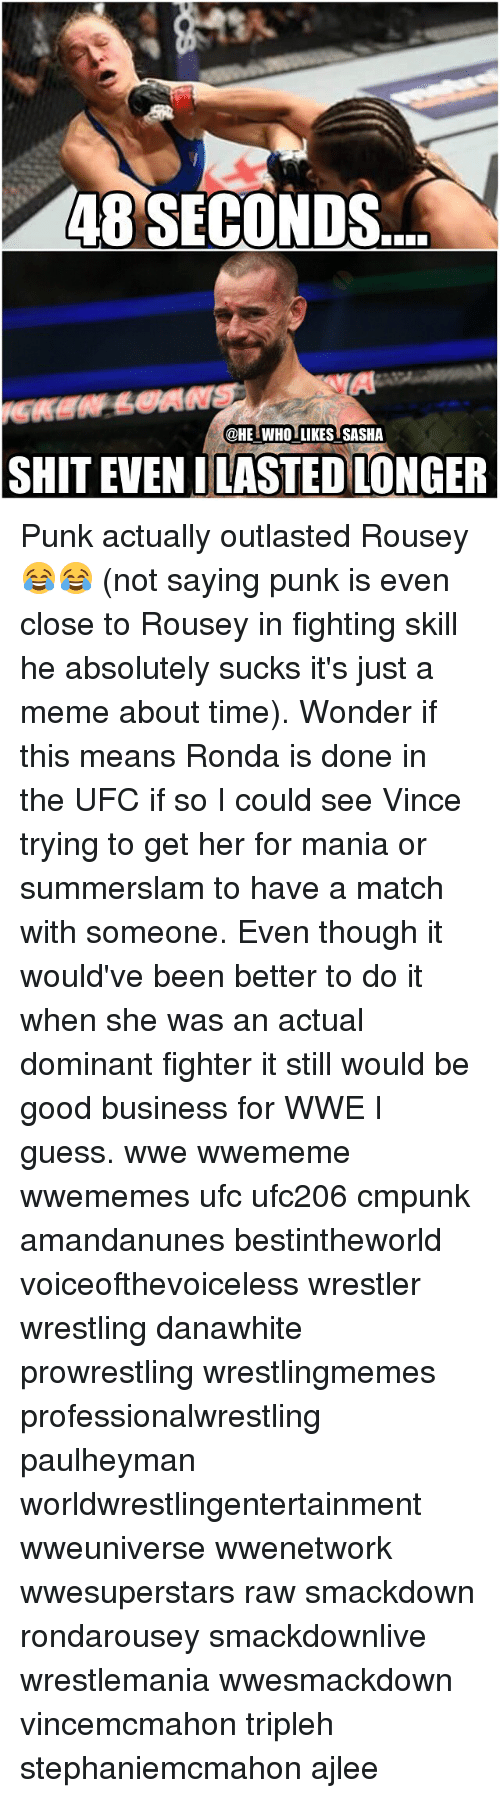 Rondarousey: 48 SECONDS  @HE WHOLLIKES SASHA  SHIT EVEN I LASTEDLONGER Punk actually outlasted Rousey😂😂 (not saying punk is even close to Rousey in fighting skill he absolutely sucks it's just a meme about time). Wonder if this means Ronda is done in the UFC if so I could see Vince trying to get her for mania or summerslam to have a match with someone. Even though it would've been better to do it when she was an actual dominant fighter it still would be good business for WWE I guess. wwe wwememe wwememes ufc ufc206 cmpunk amandanunes bestintheworld voiceofthevoiceless wrestler wrestling danawhite prowrestling wrestlingmemes professionalwrestling paulheyman worldwrestlingentertainment wweuniverse wwenetwork wwesuperstars raw smackdown rondarousey smackdownlive wrestlemania wwesmackdown vincemcmahon tripleh stephaniemcmahon ajlee